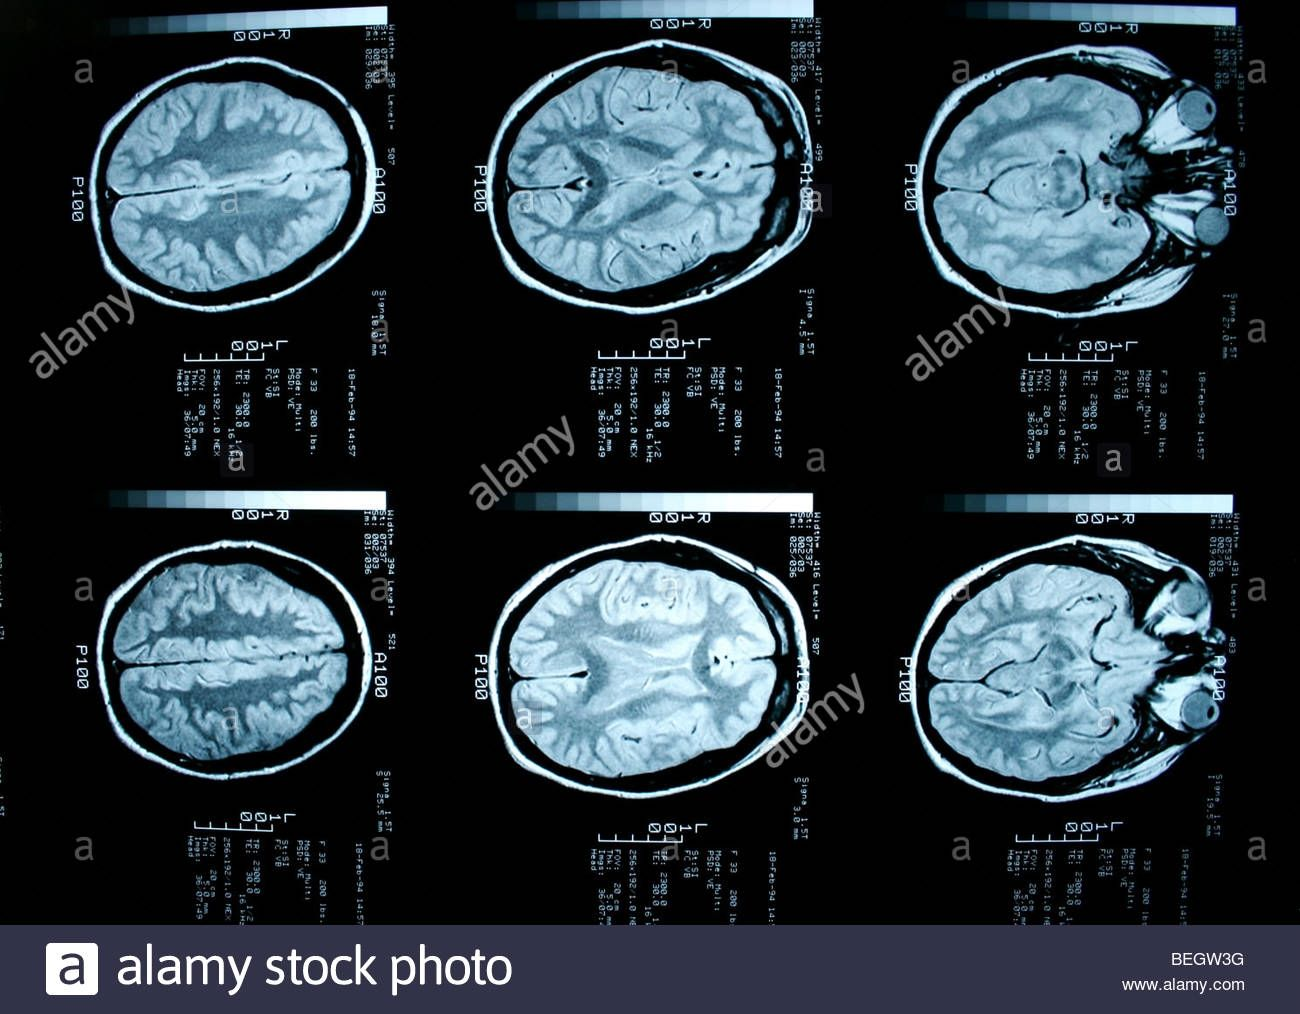 MRI Brain With And Without Contrast